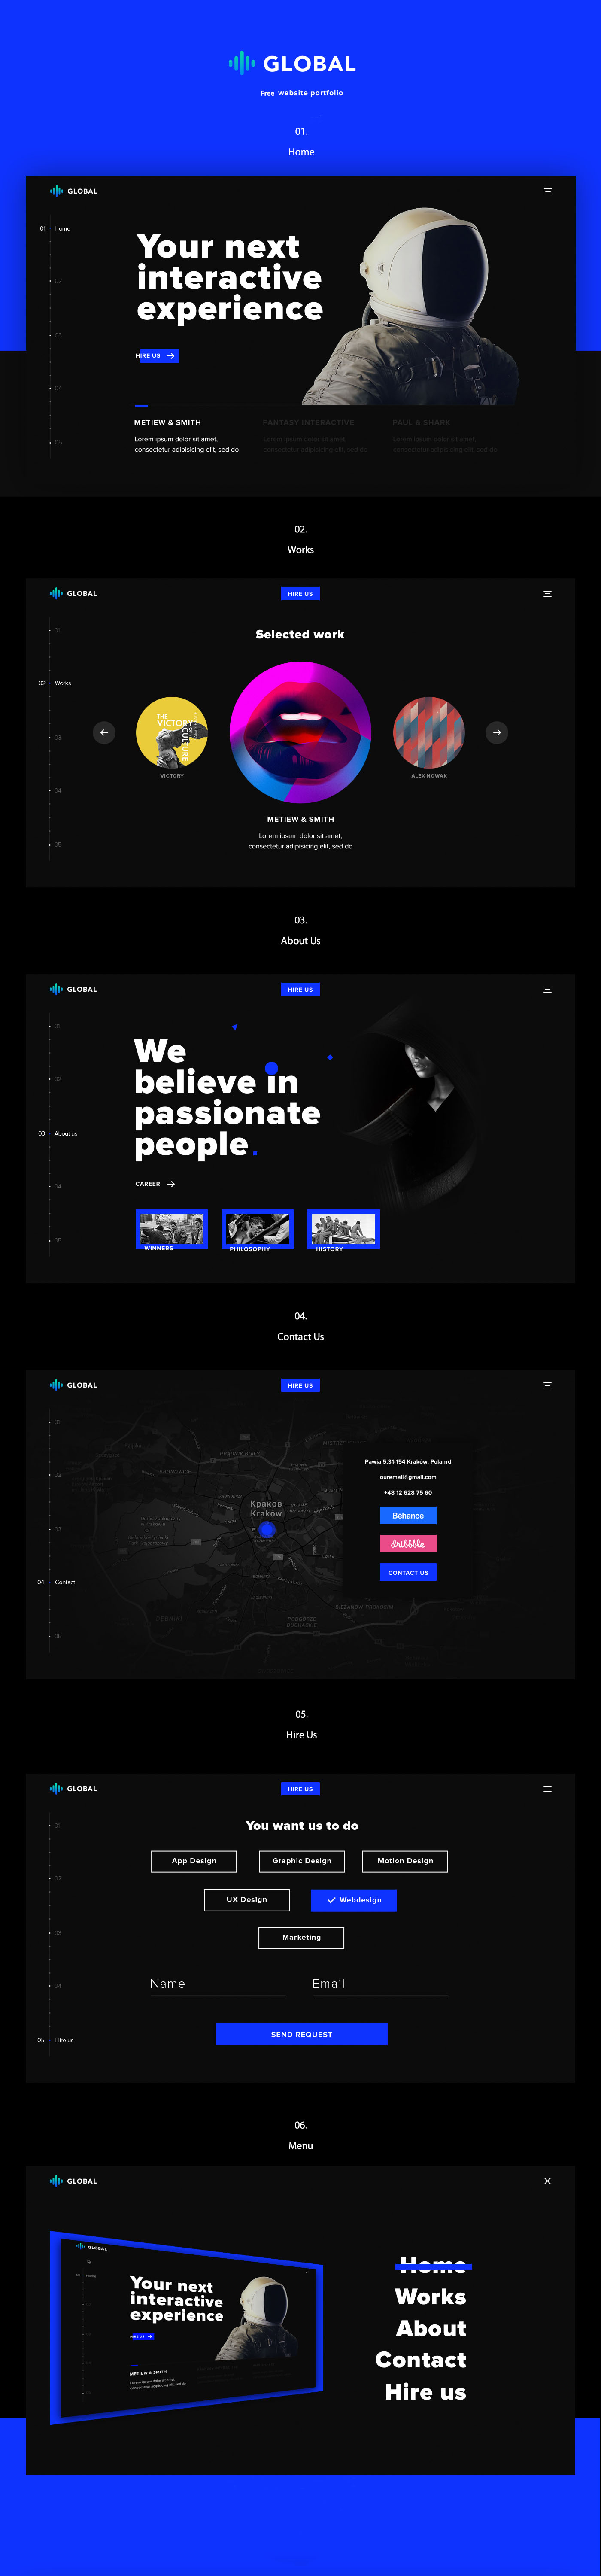 Global Free Portfolio Website Template